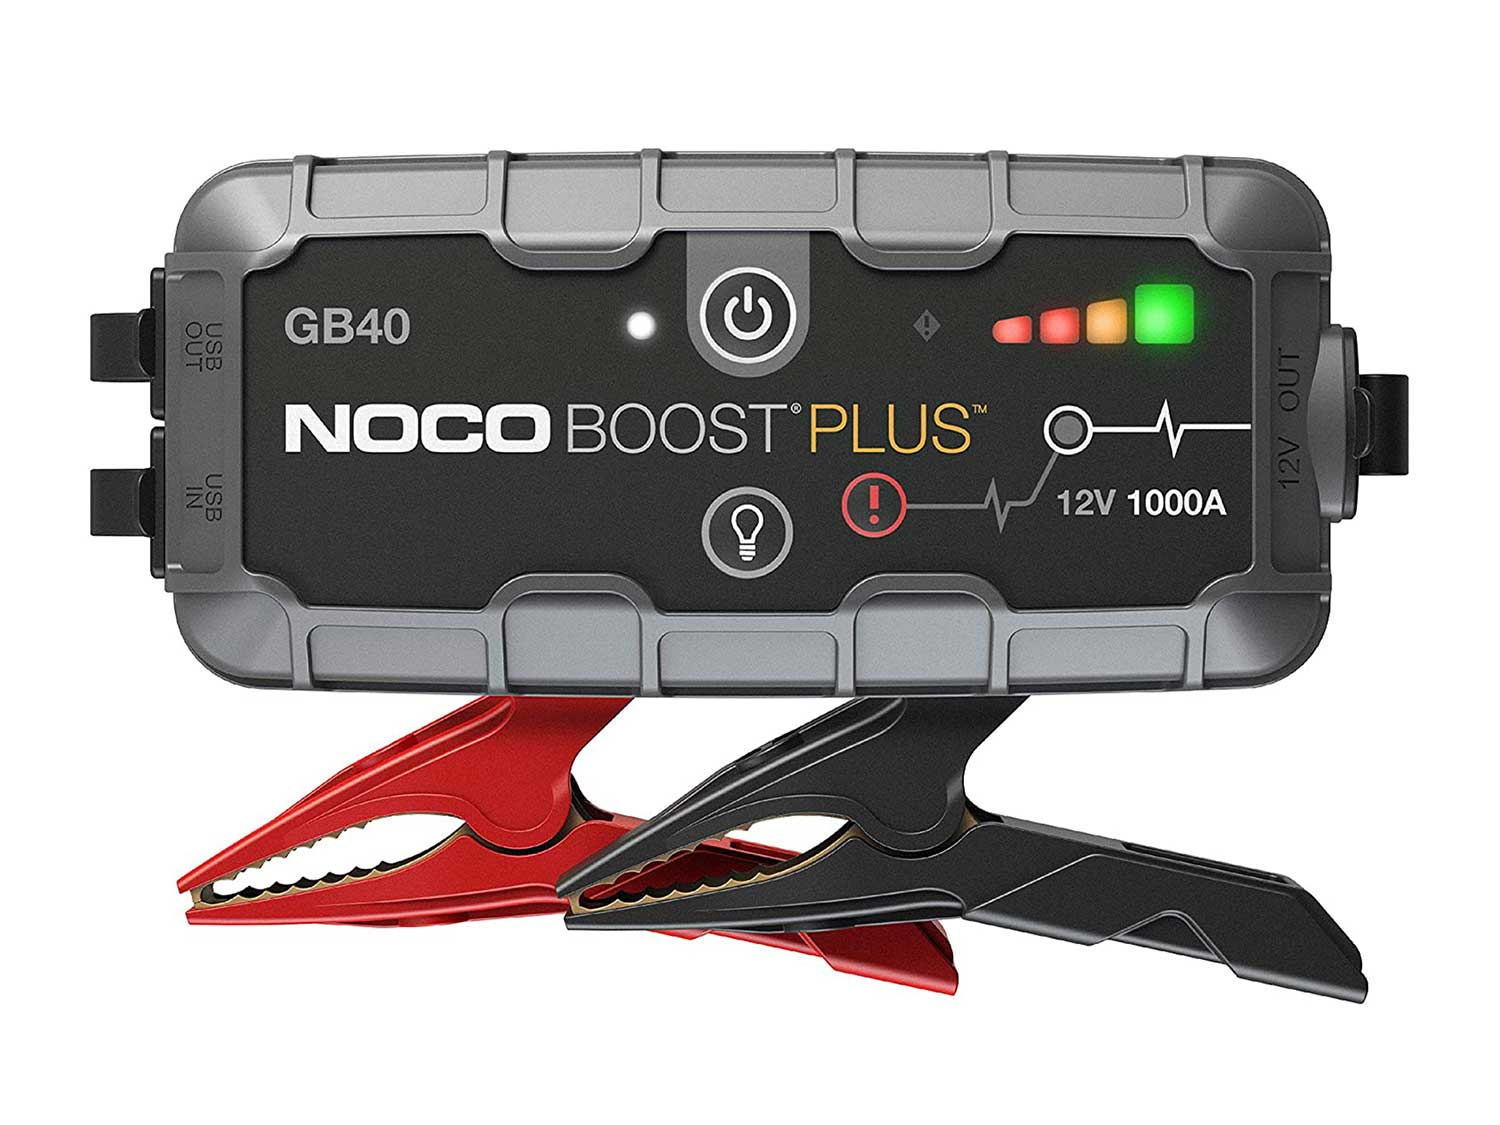 NOCO Boost Plus GB40 1000 Amp 12-Volt Ultra Safe Portable Lithium Car Battery Jump Starter Pack For Up To 6-Liter Gasoline And 3-Liter Diesel Engines